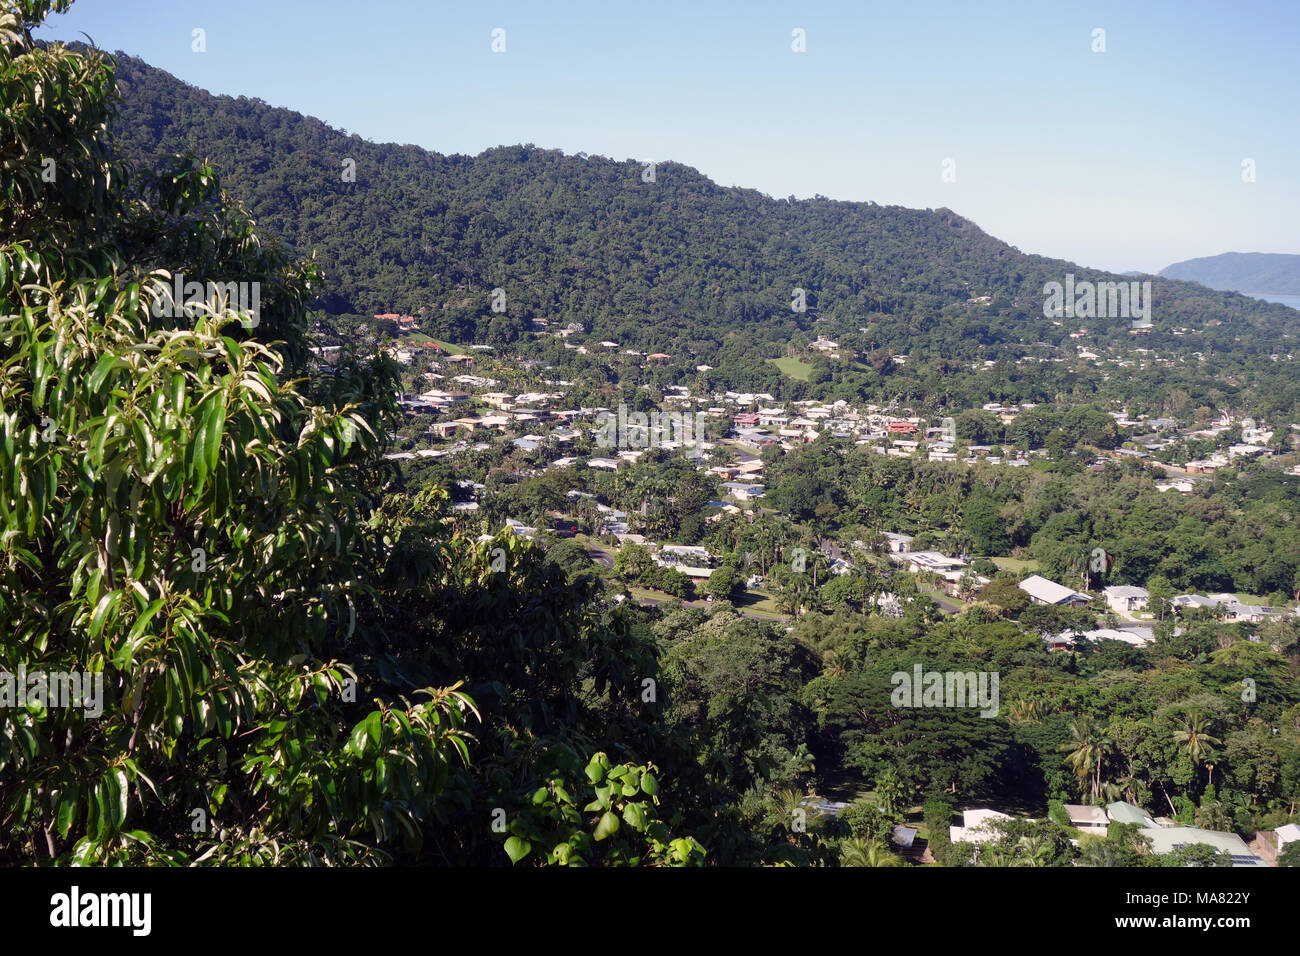 View over leafy suburbs of Whitfield and Edge Hill from Green Arrow walking track up Mt Whitfield, Cairns, Queensland, Australia. No PR - Stock Image